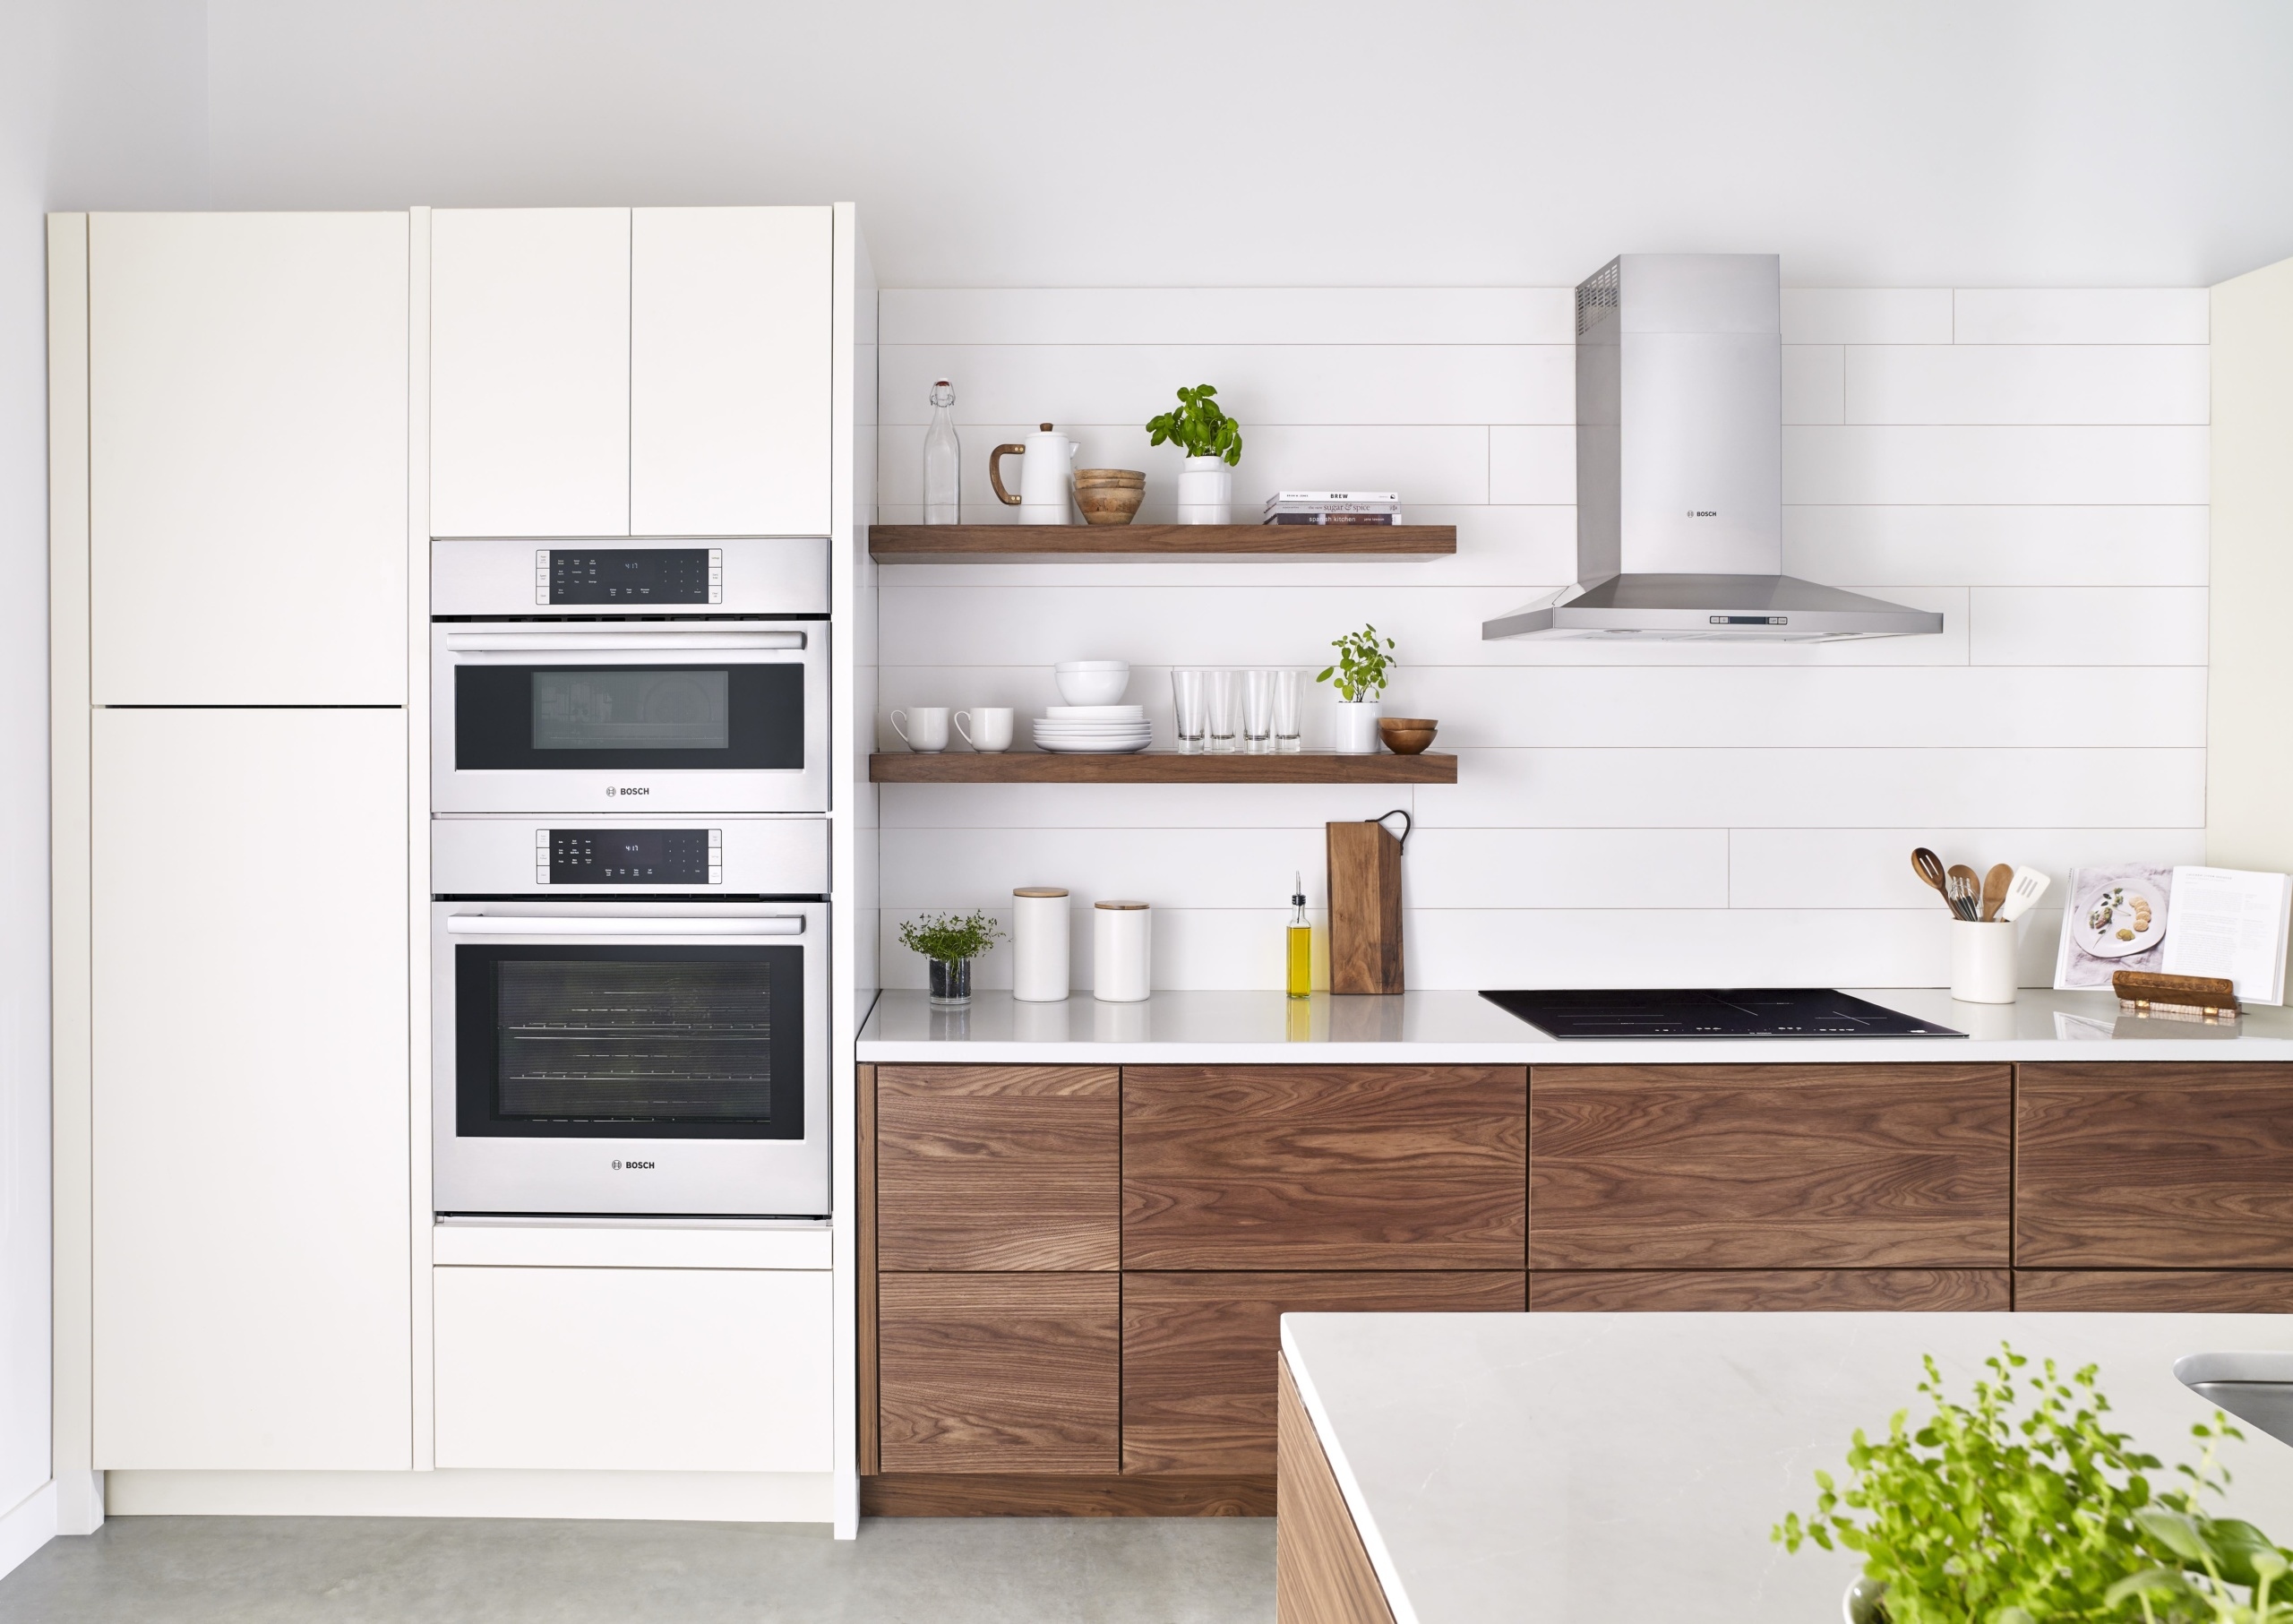 Interior of a kitchen with new appliances and wood shelve